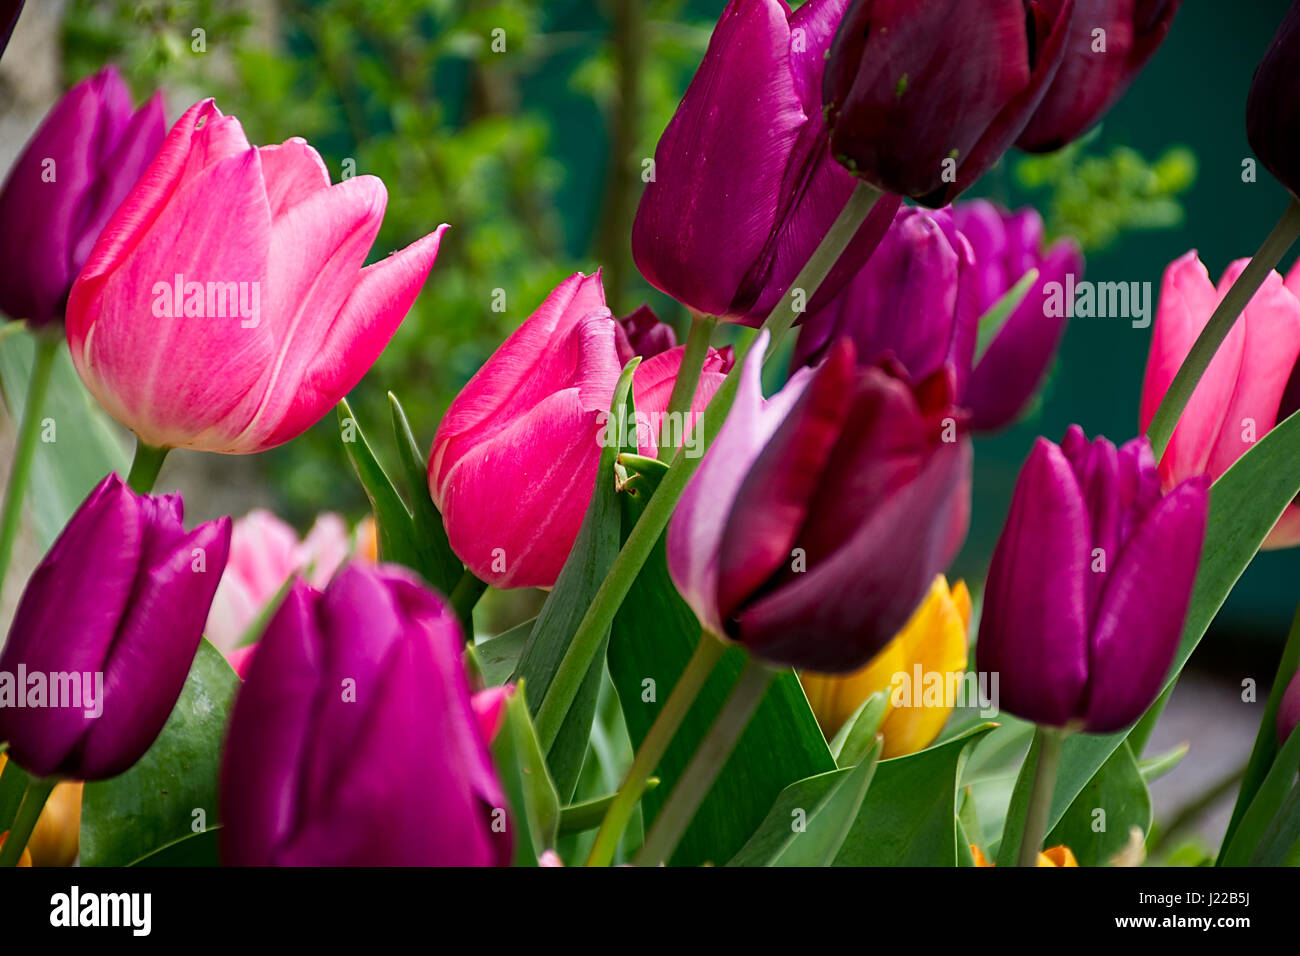 Blossoming Burgundy Flowers Stock Photos Blossoming Burgundy